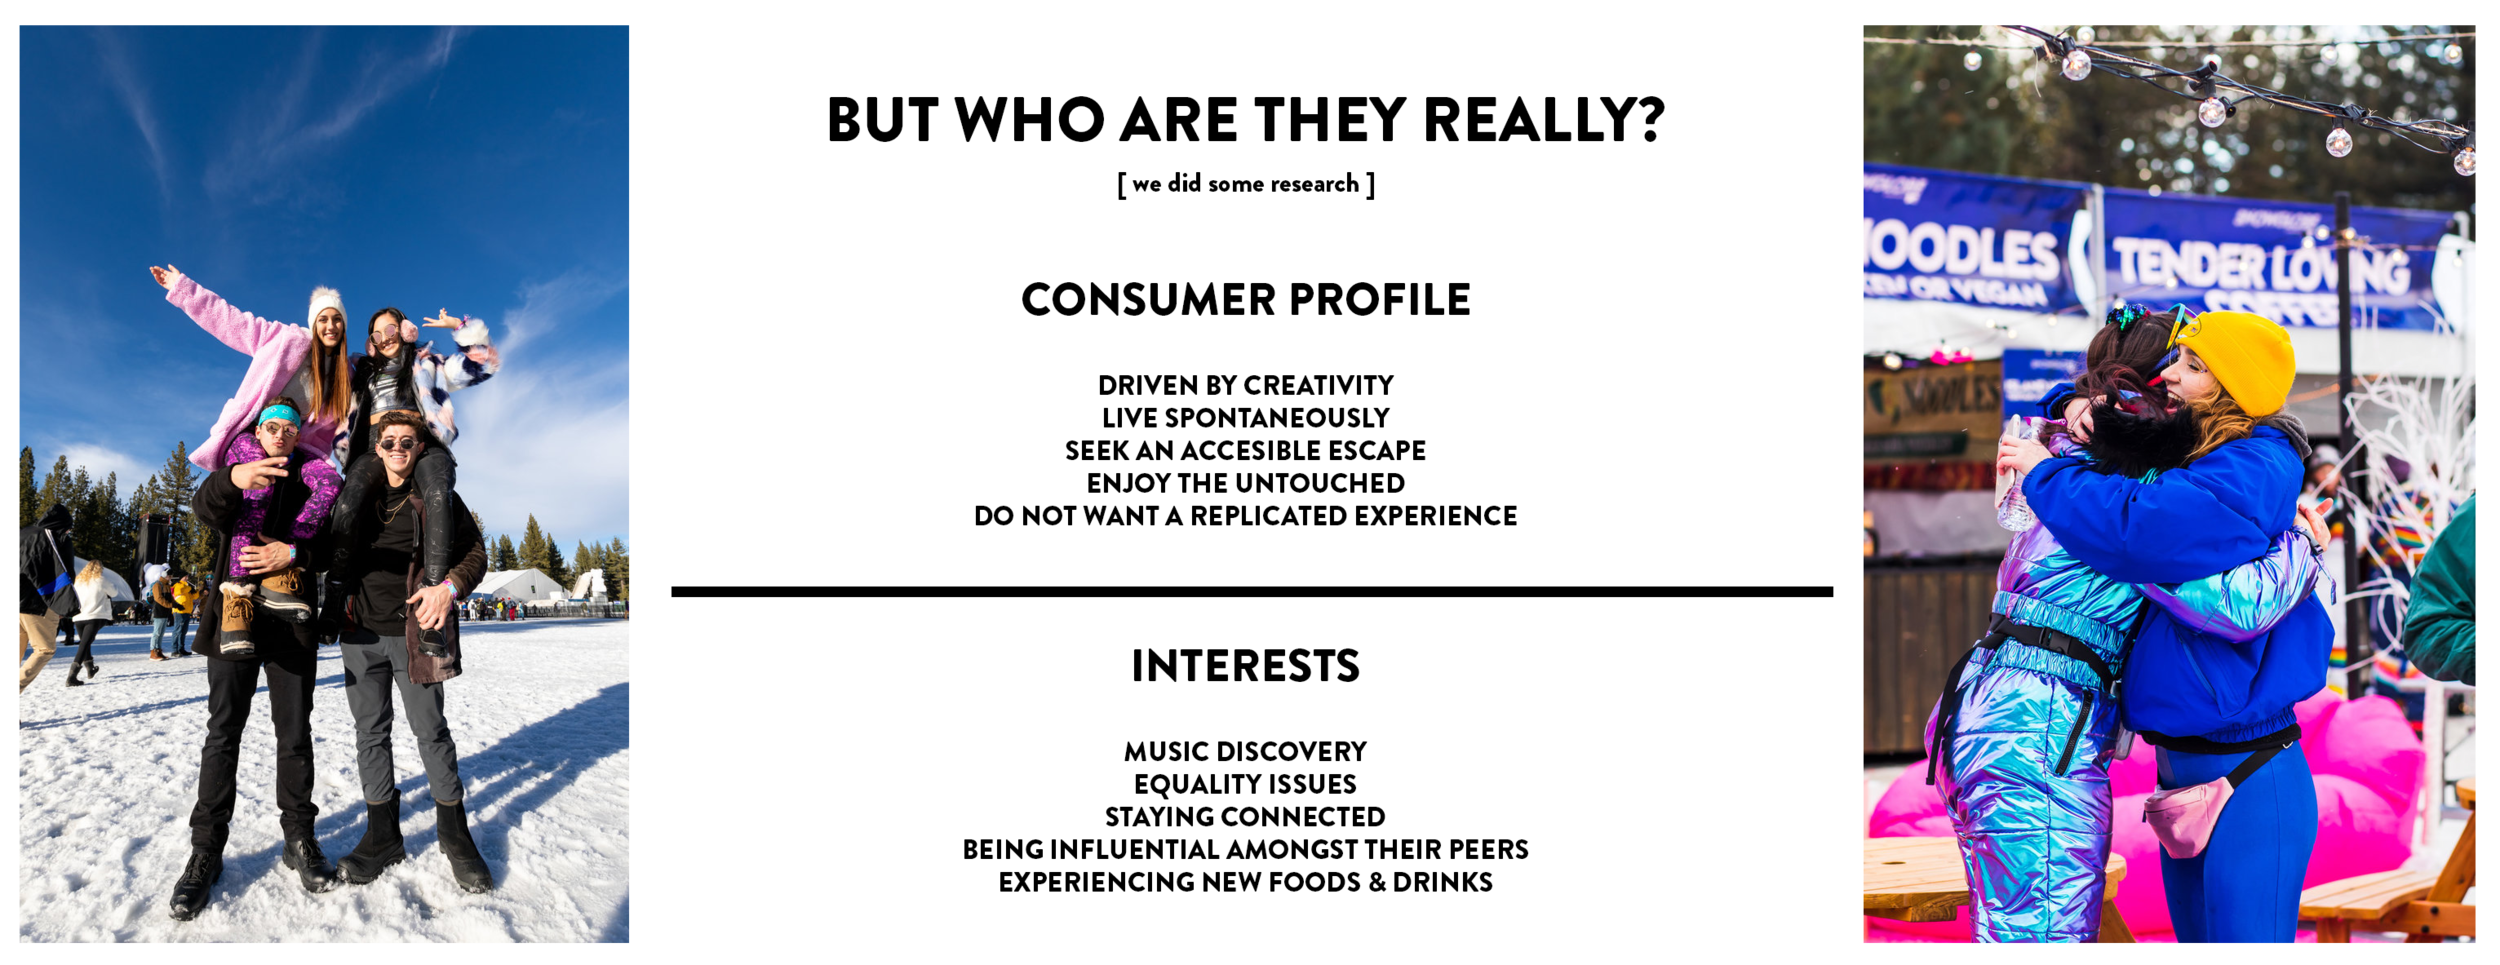 CONSUMER PROFILE 1.png